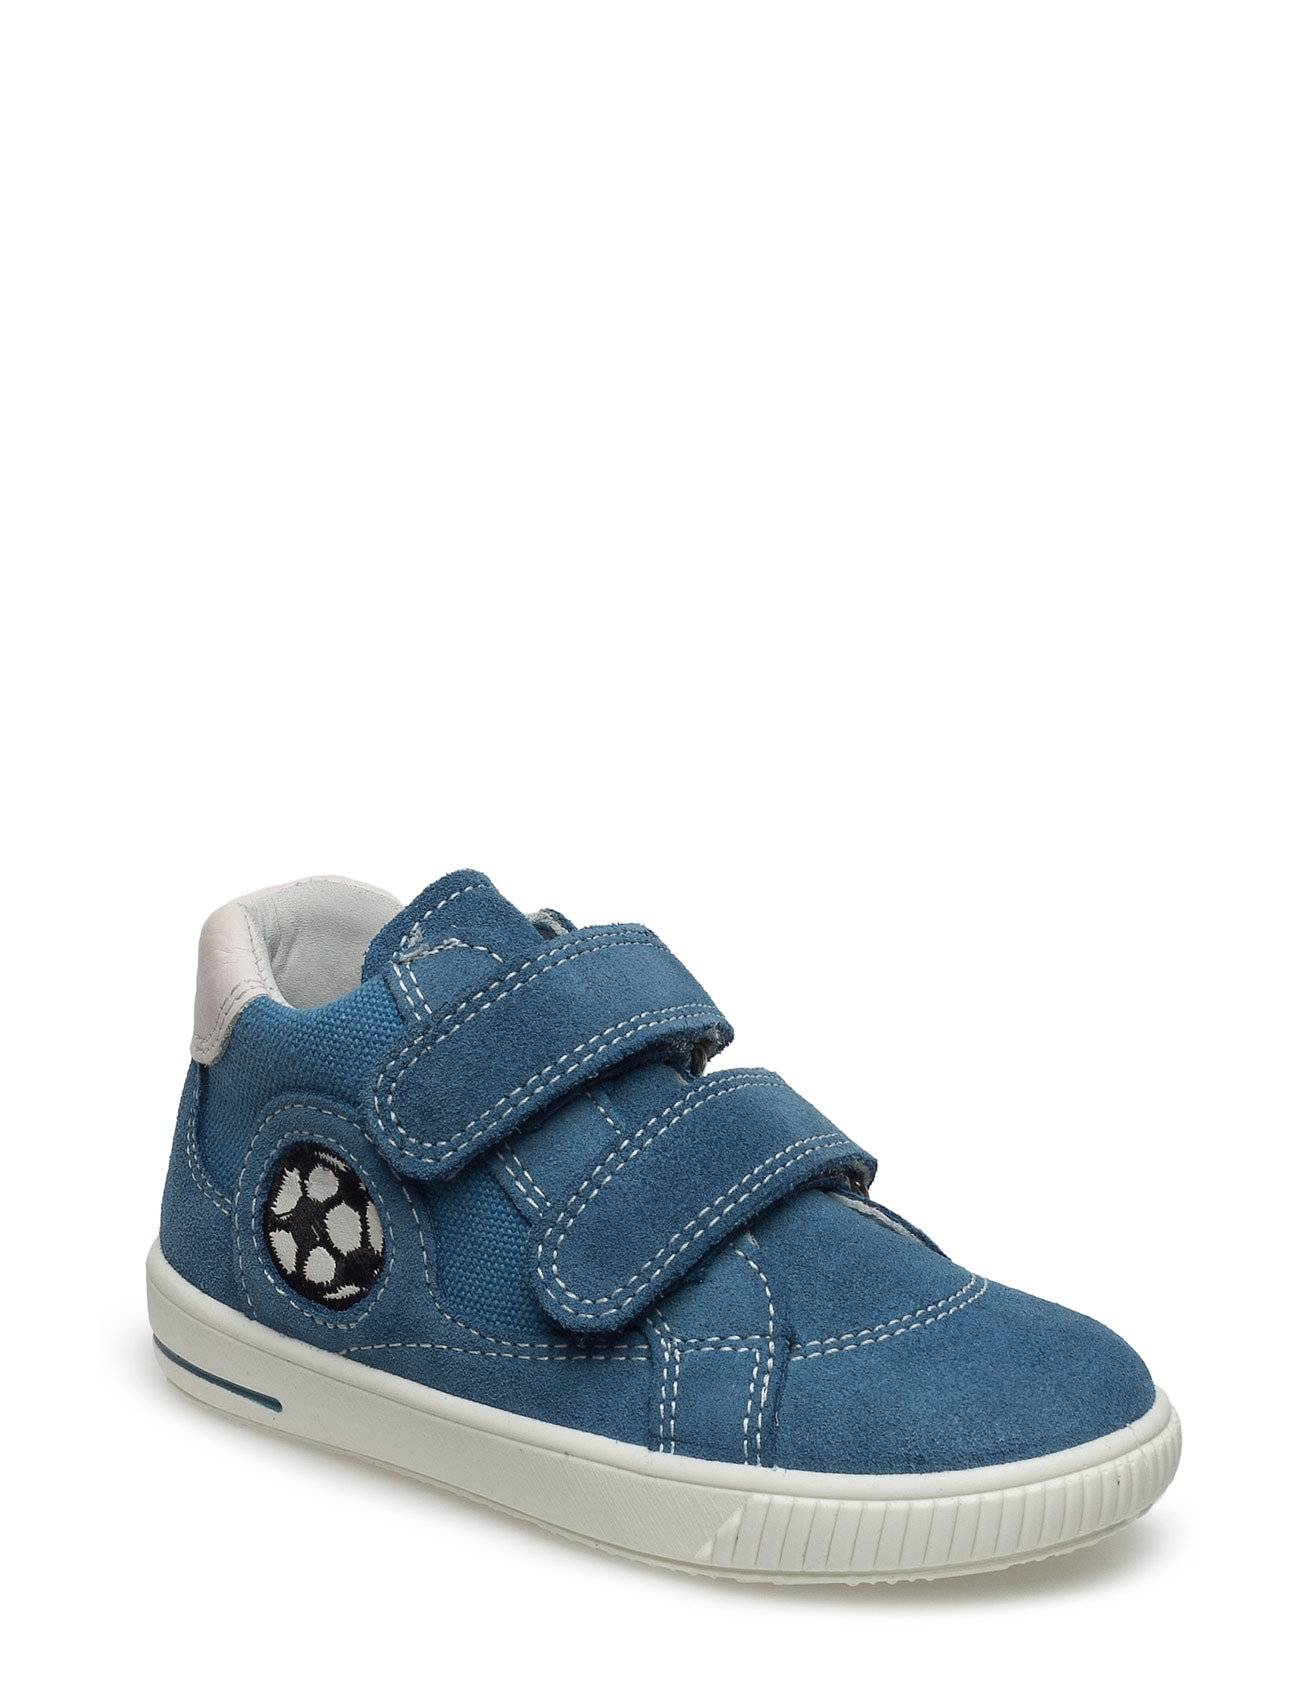 Superfit Moppy First Shoes